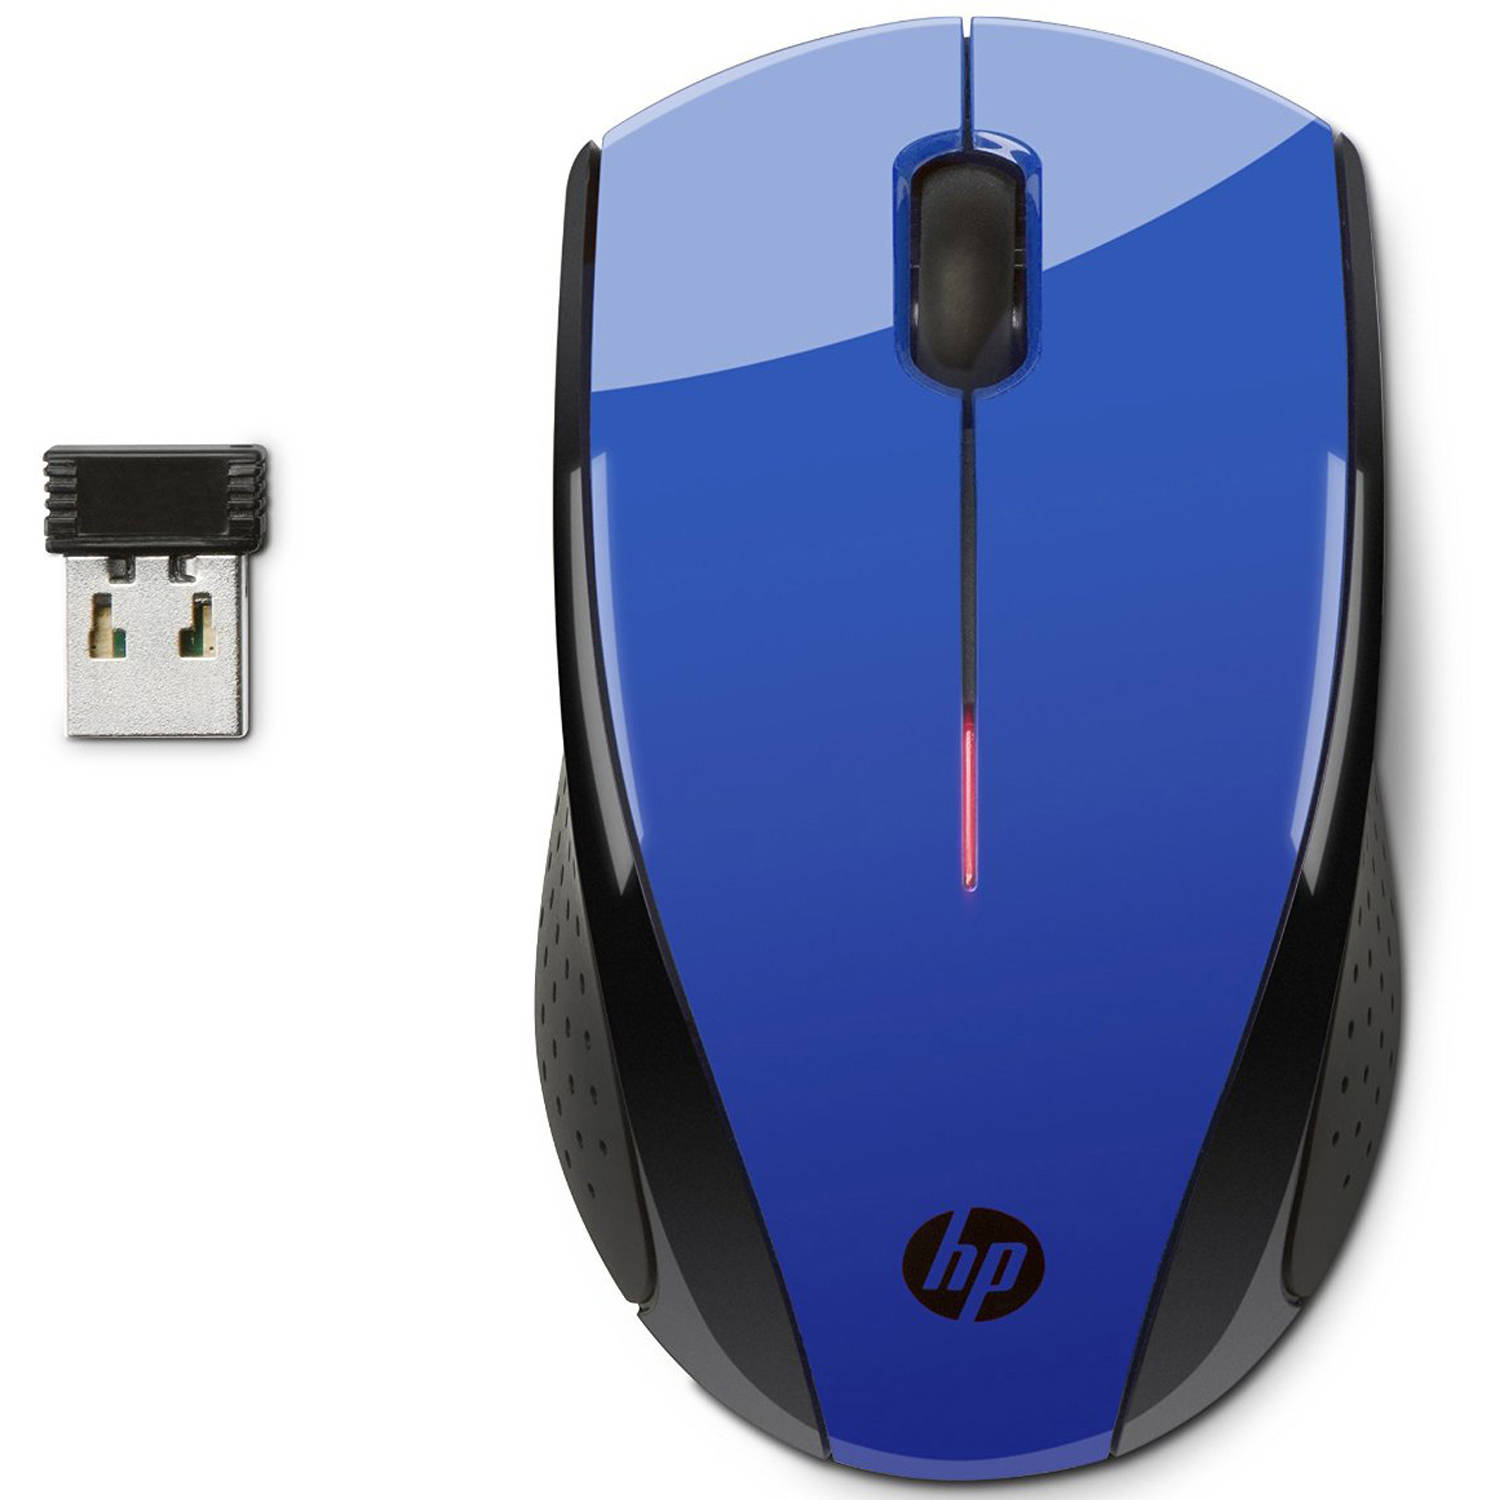 HP N4G63AA#ABA X3000 Wireless Mouse, Cobalt Blue